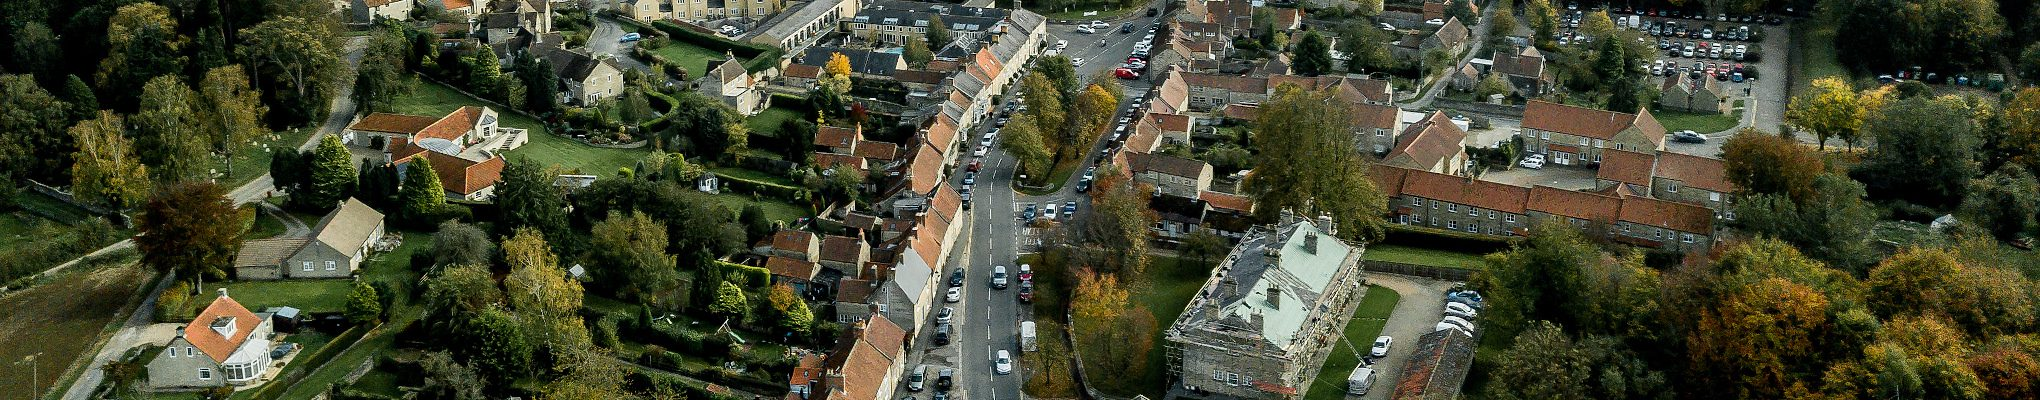 banner image of Yorkshire village from overhead